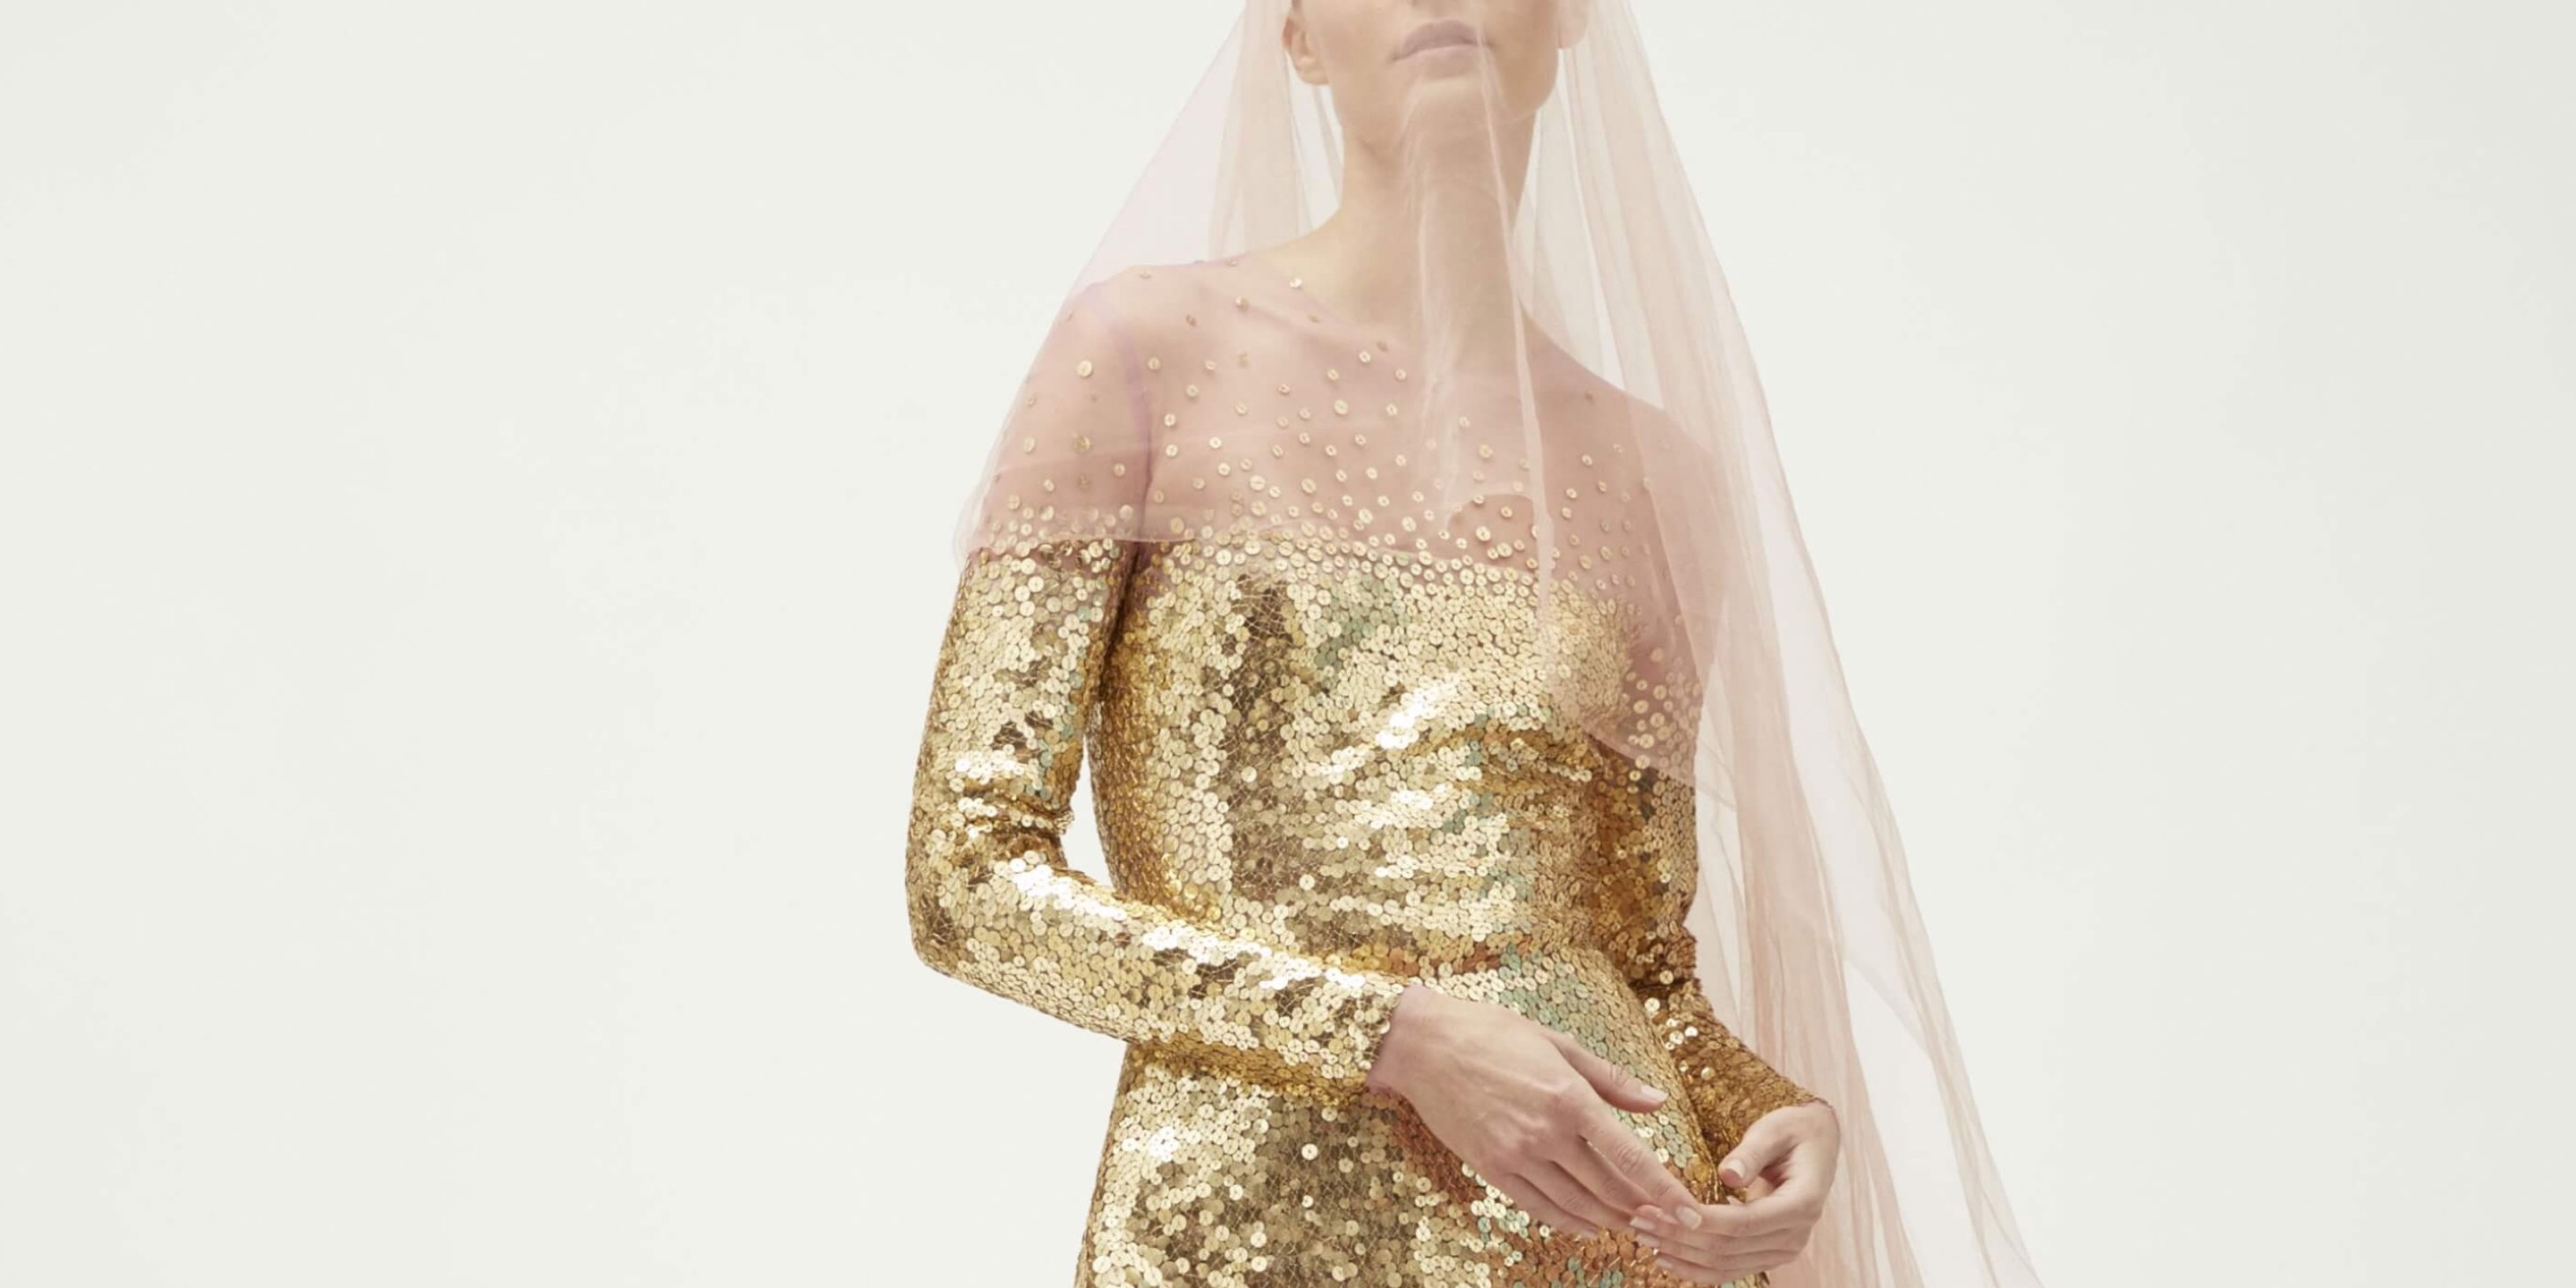 woman model wearing veil and gold reem acra dress